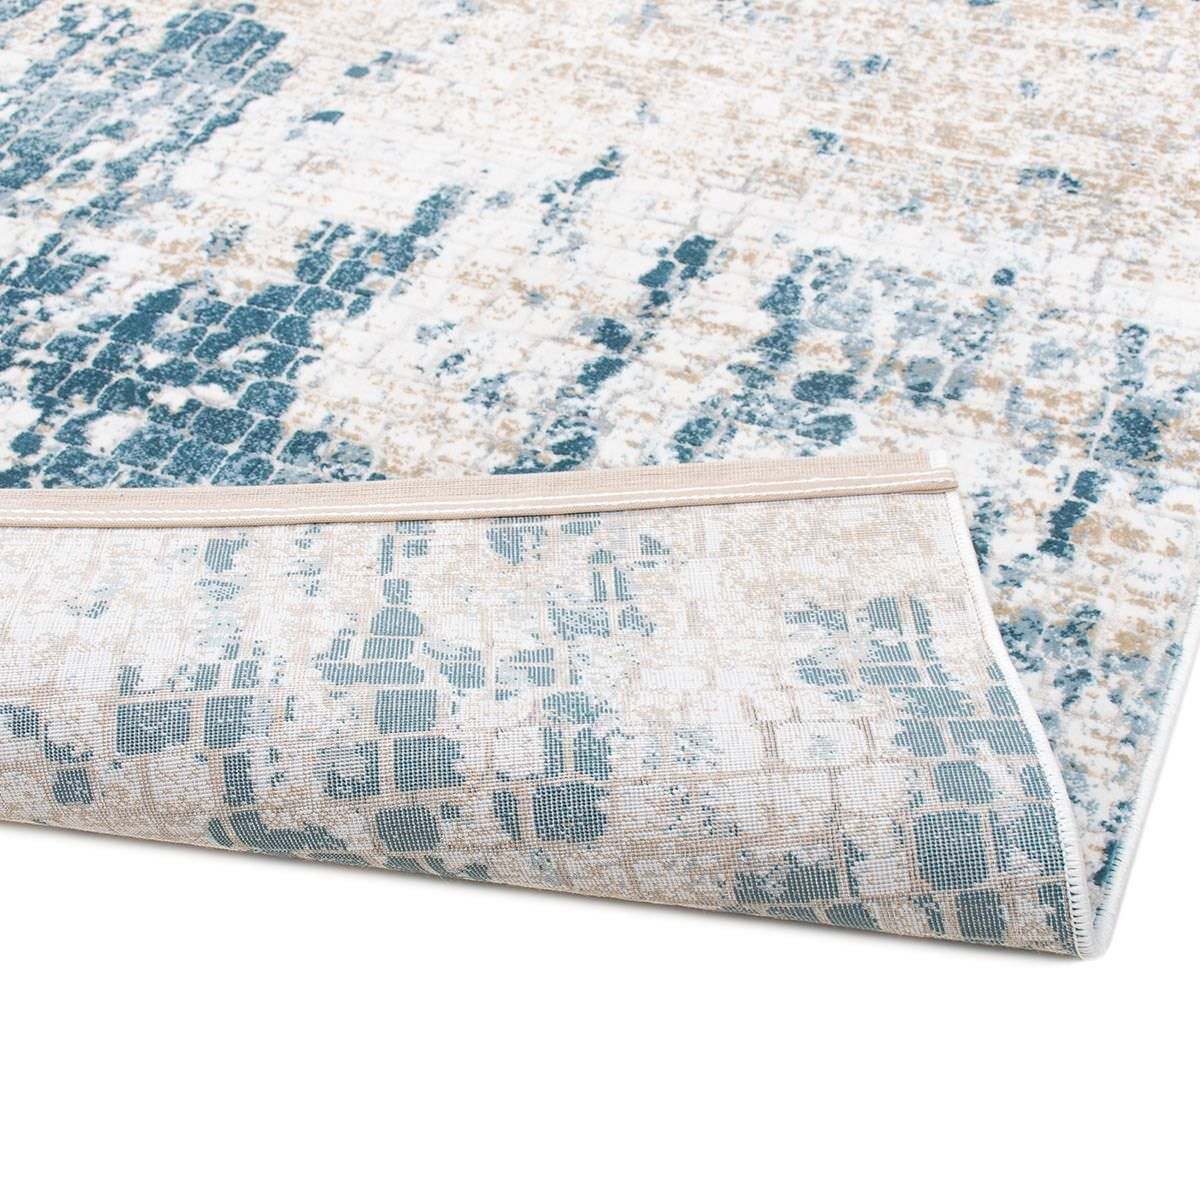 Madrid Rug 01 Blue 2